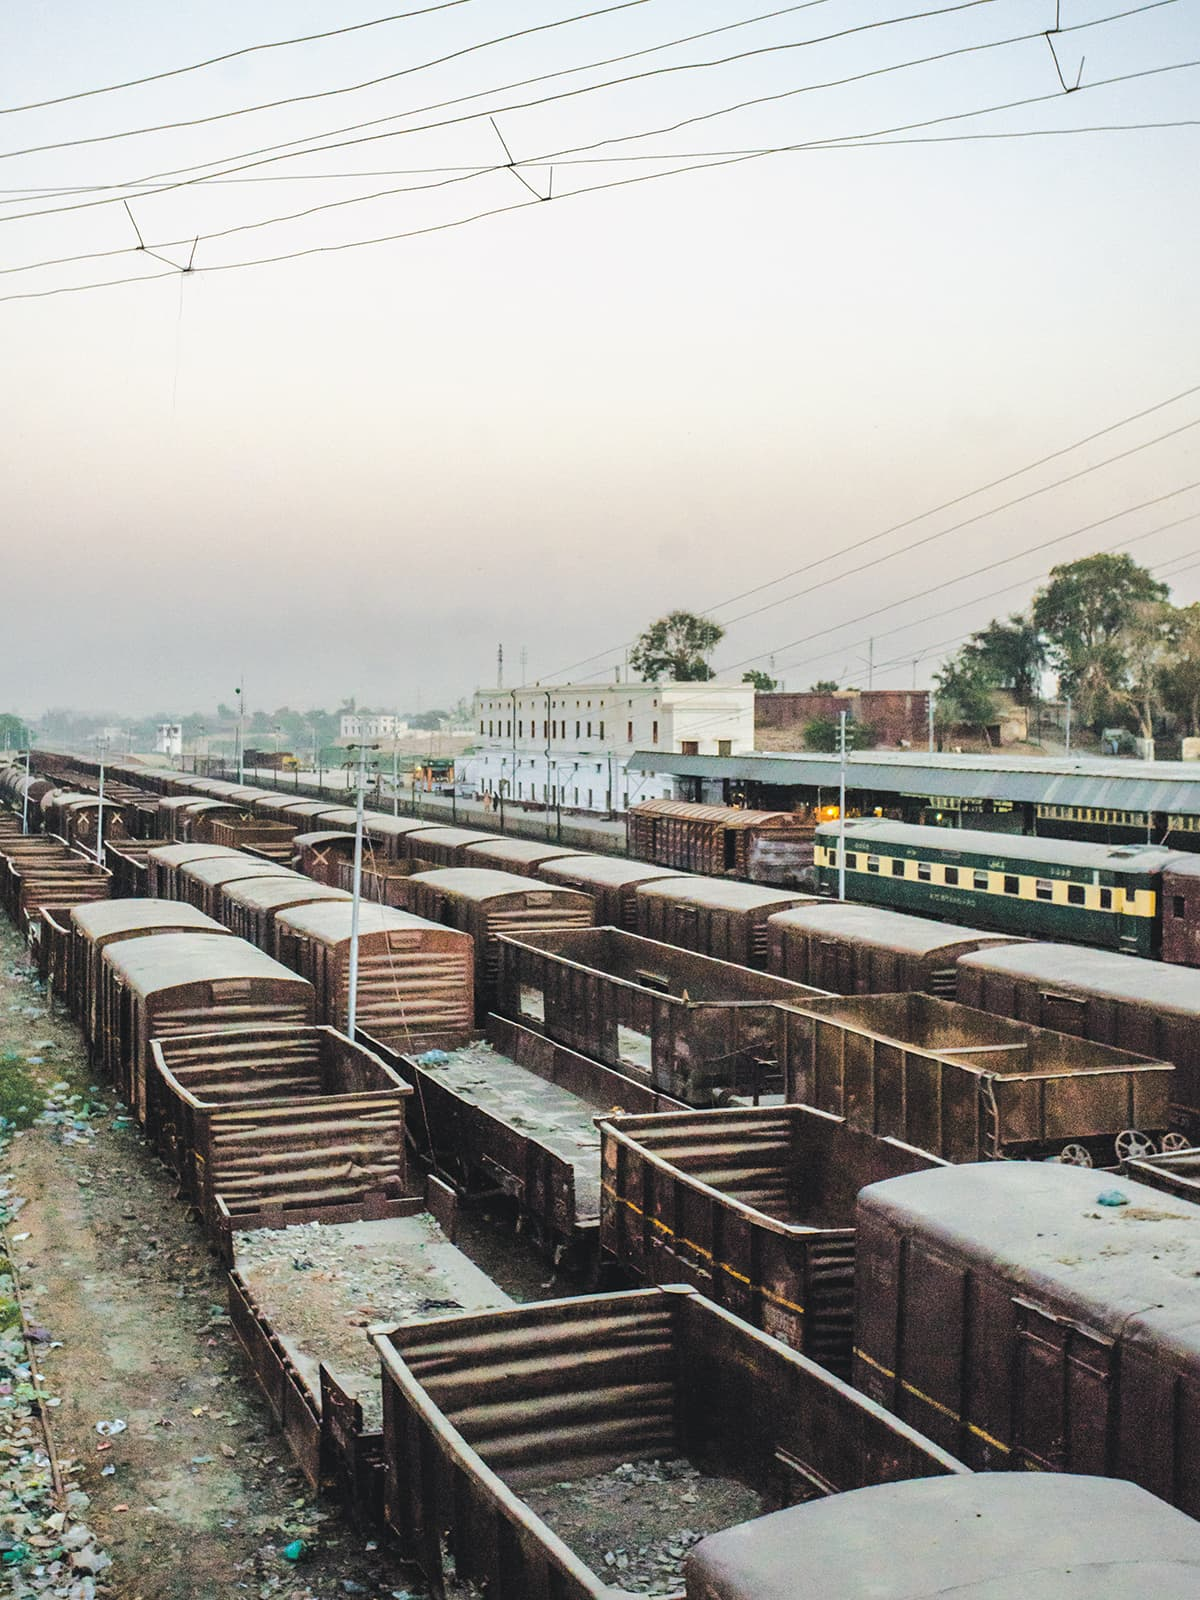 Carriages at Sukkur Railway Station | Mohammad Ali, White Star